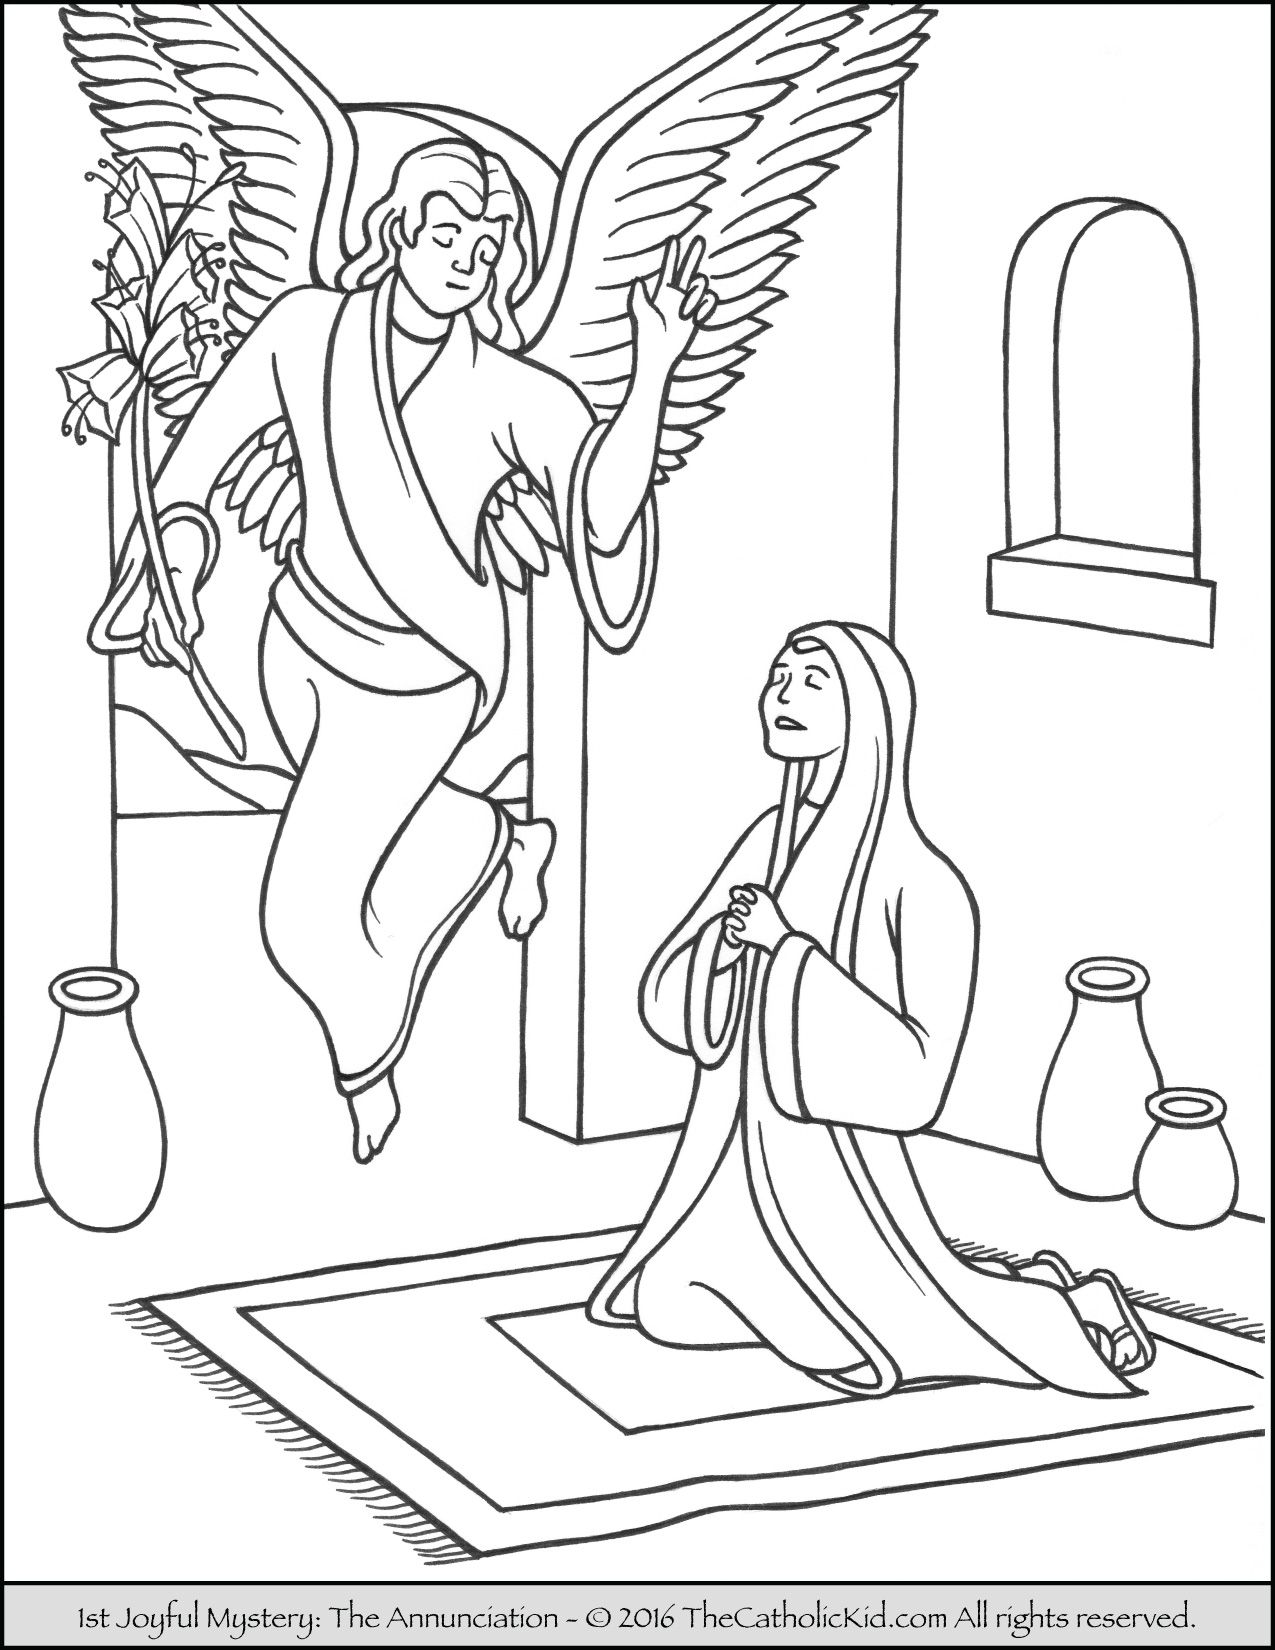 Joyful Mysteries Rosary Coloring Pages The Catholic Kid Catholic Coloring Pages And Games For Childre Angel Coloring Pages Coloring Pages Catholic Coloring